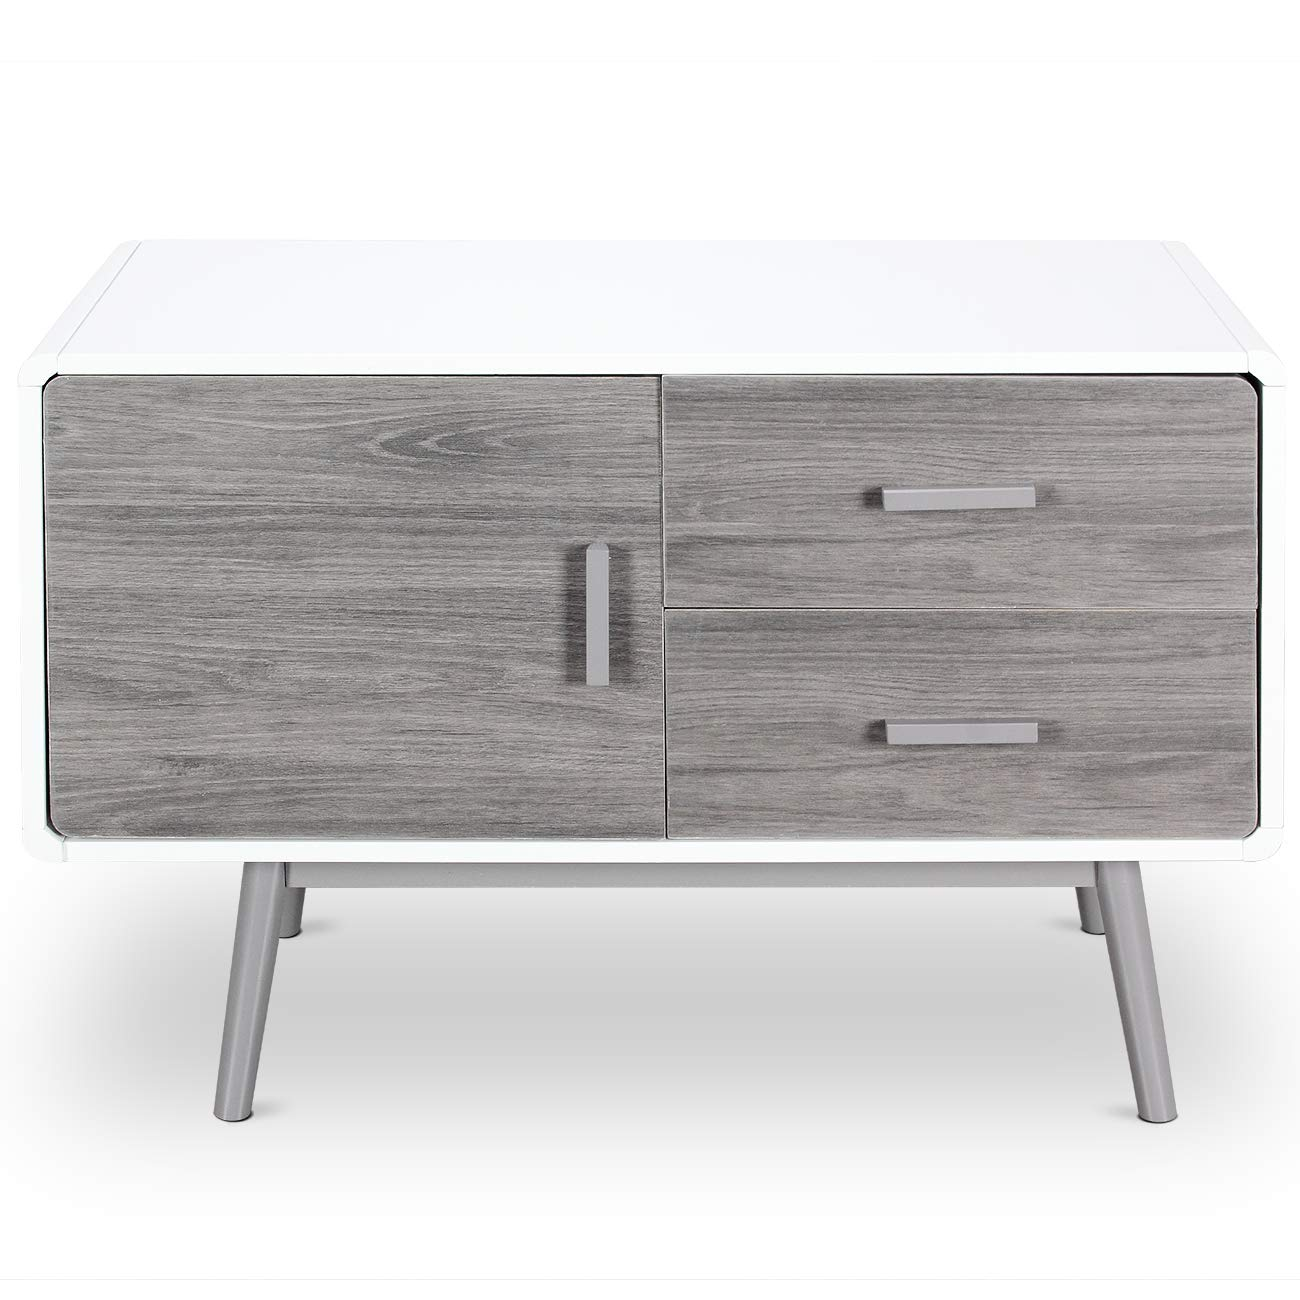 BELLEZE Contemporary Sideboard Buffet Table Cabinet with Wood Storage Console Table 2 Drawers & 1 Cabinet White by Belleze (Image #2)